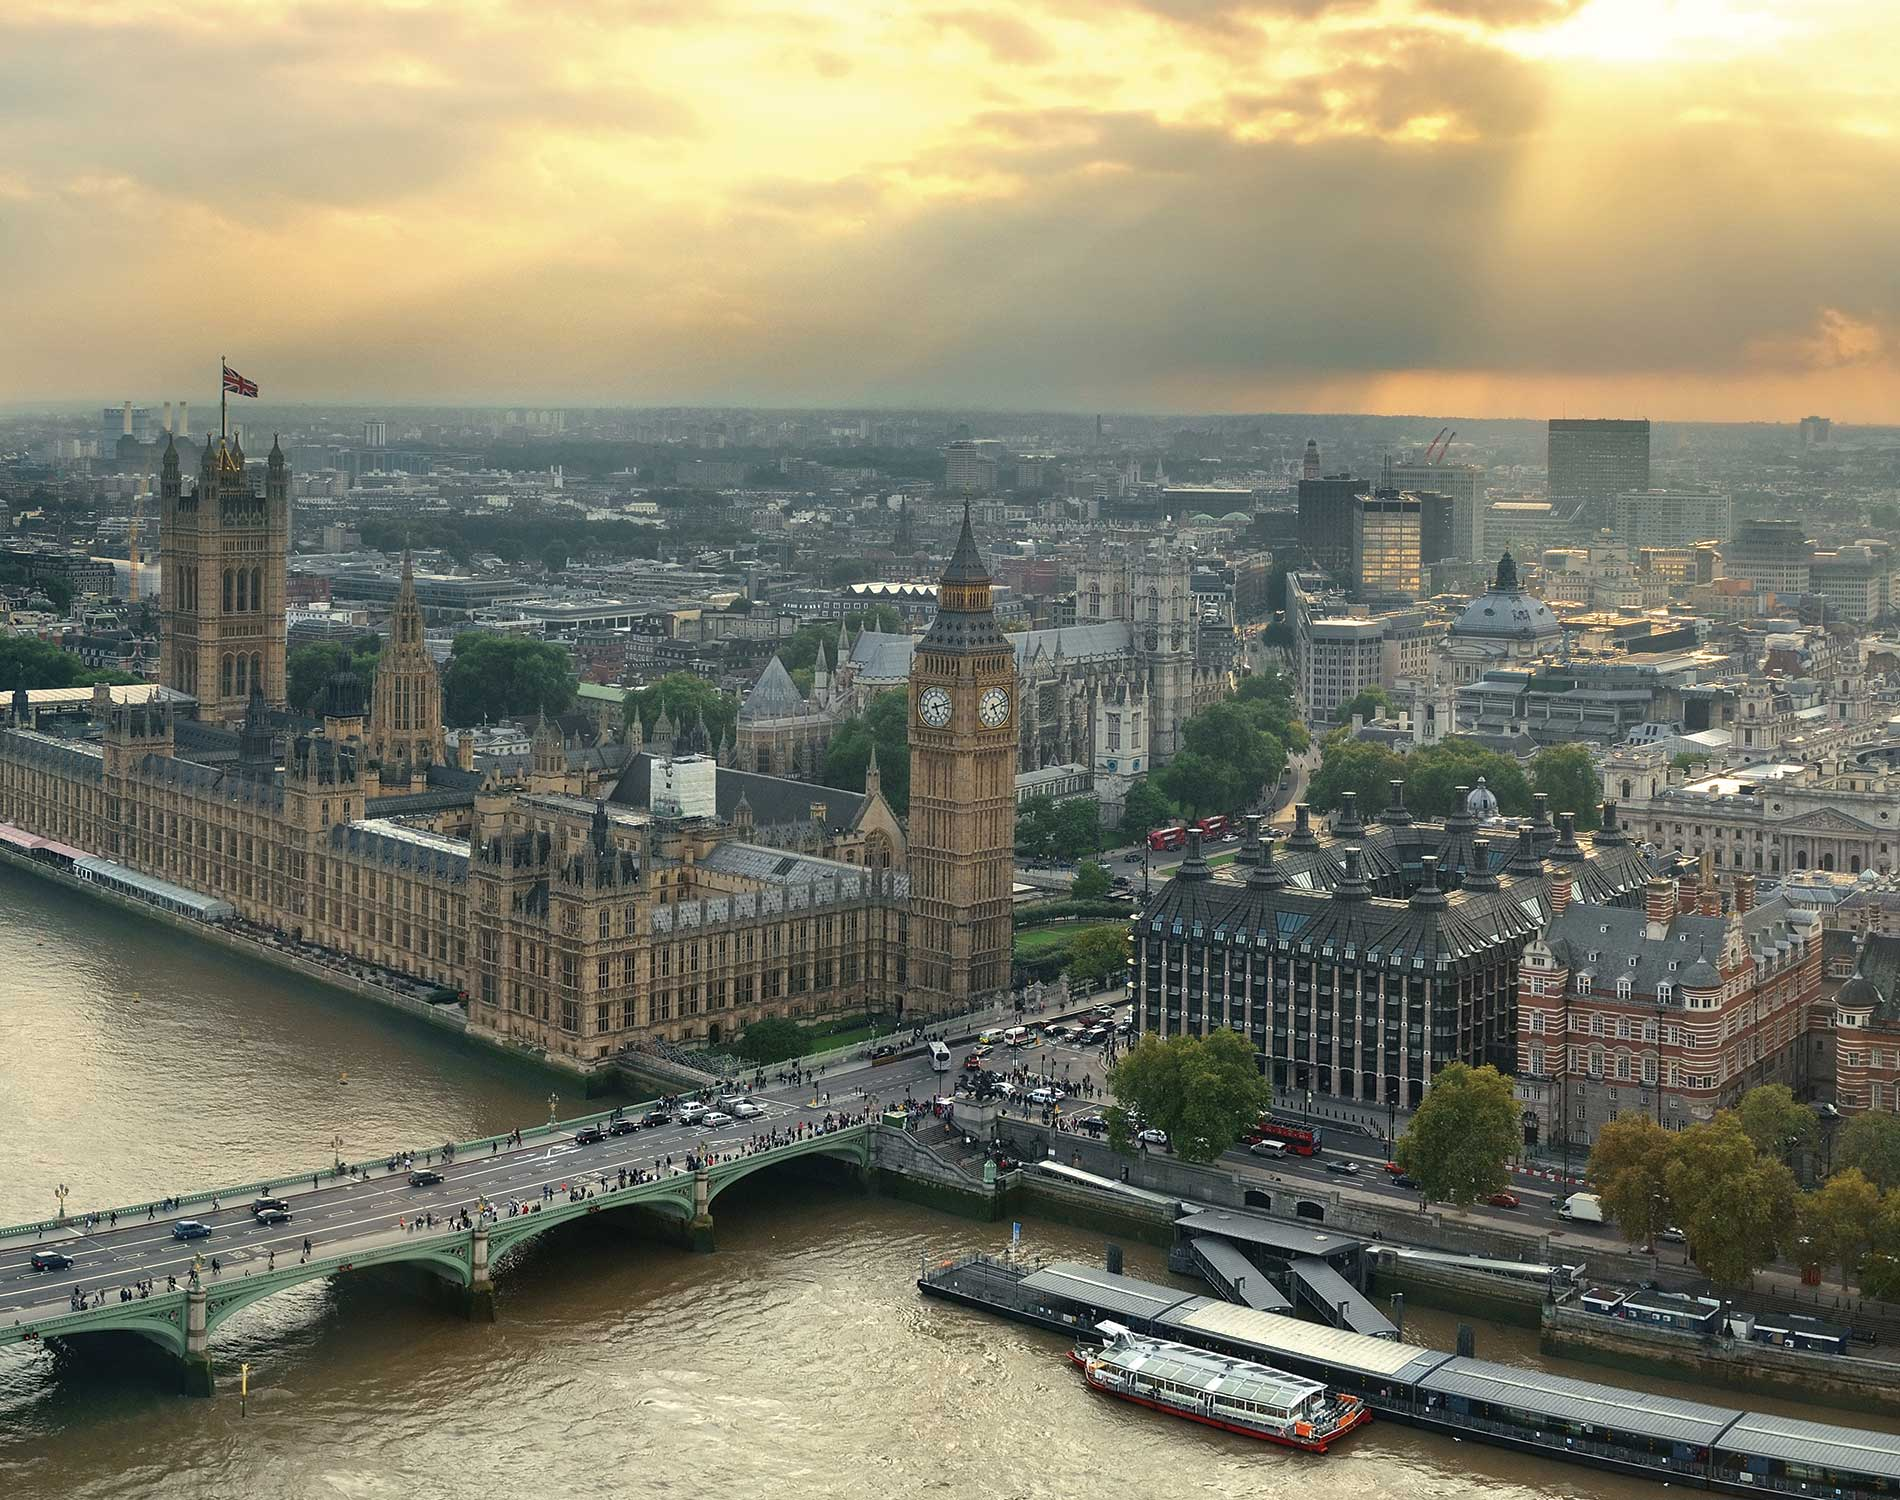 /-/media/images/website/background-images/regions/united-kingdom/westminsterrooftopview.ashx